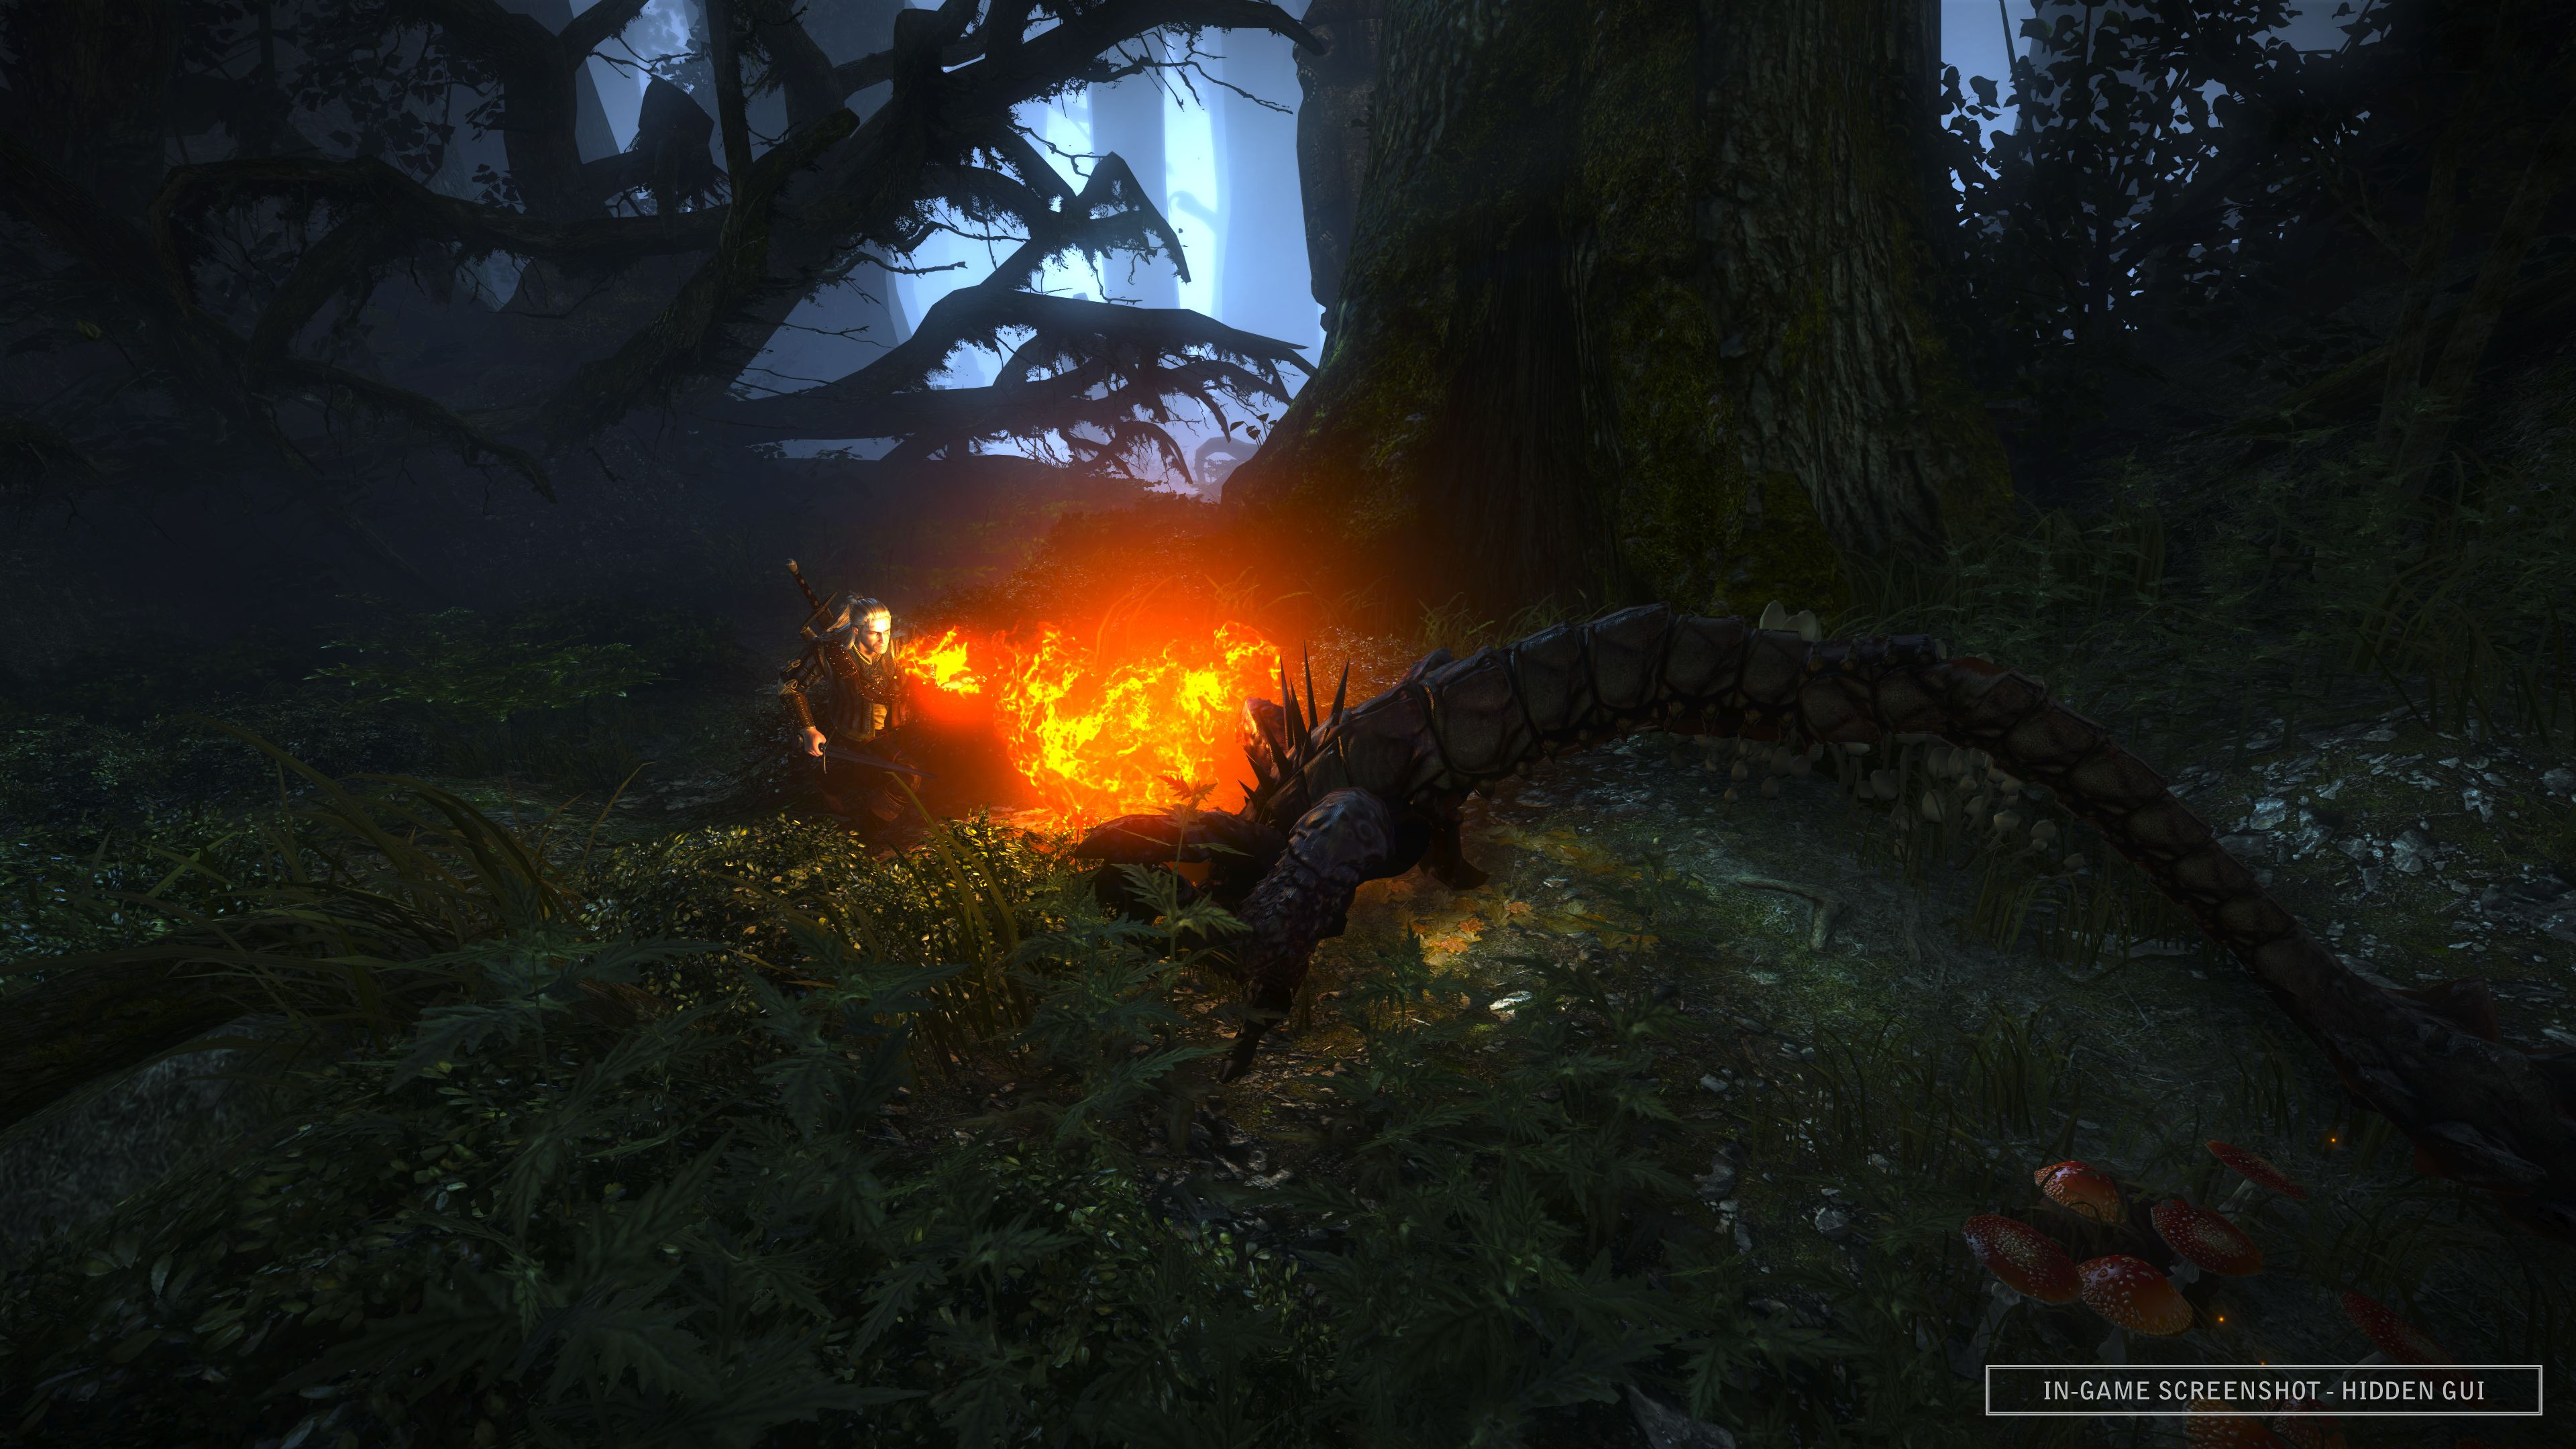 The Witcher 2 screens have kings, castles and swamp monsters.